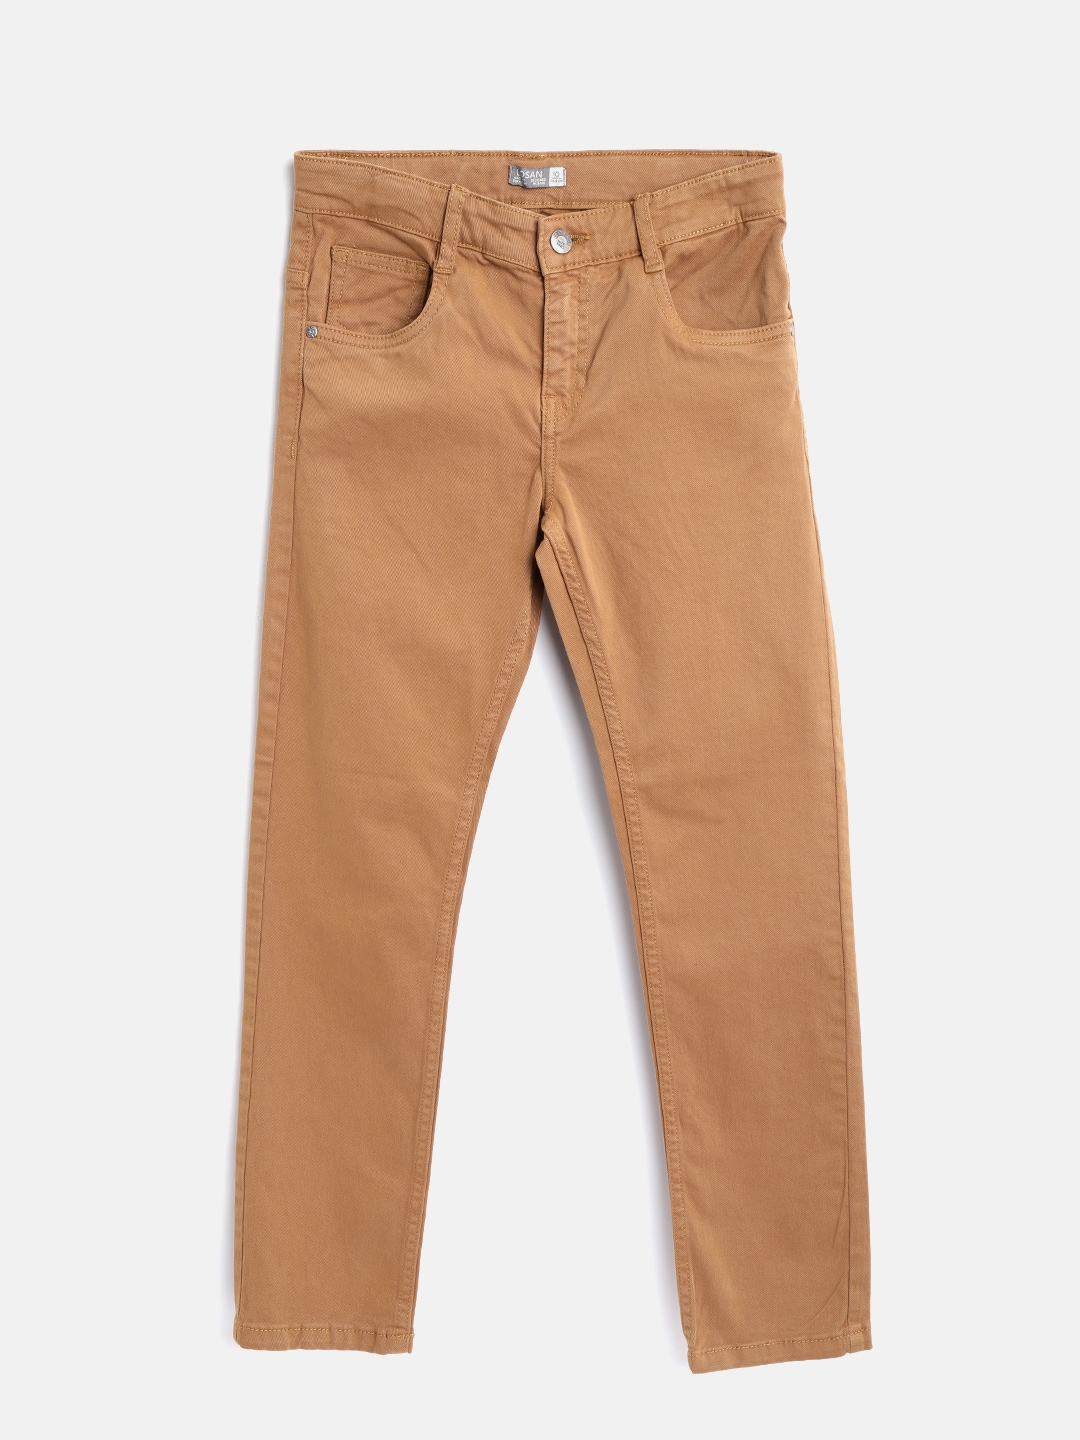 09a5191b3f79e Brown Jeans - Buy Brown Jeans For Men   Women Online in India